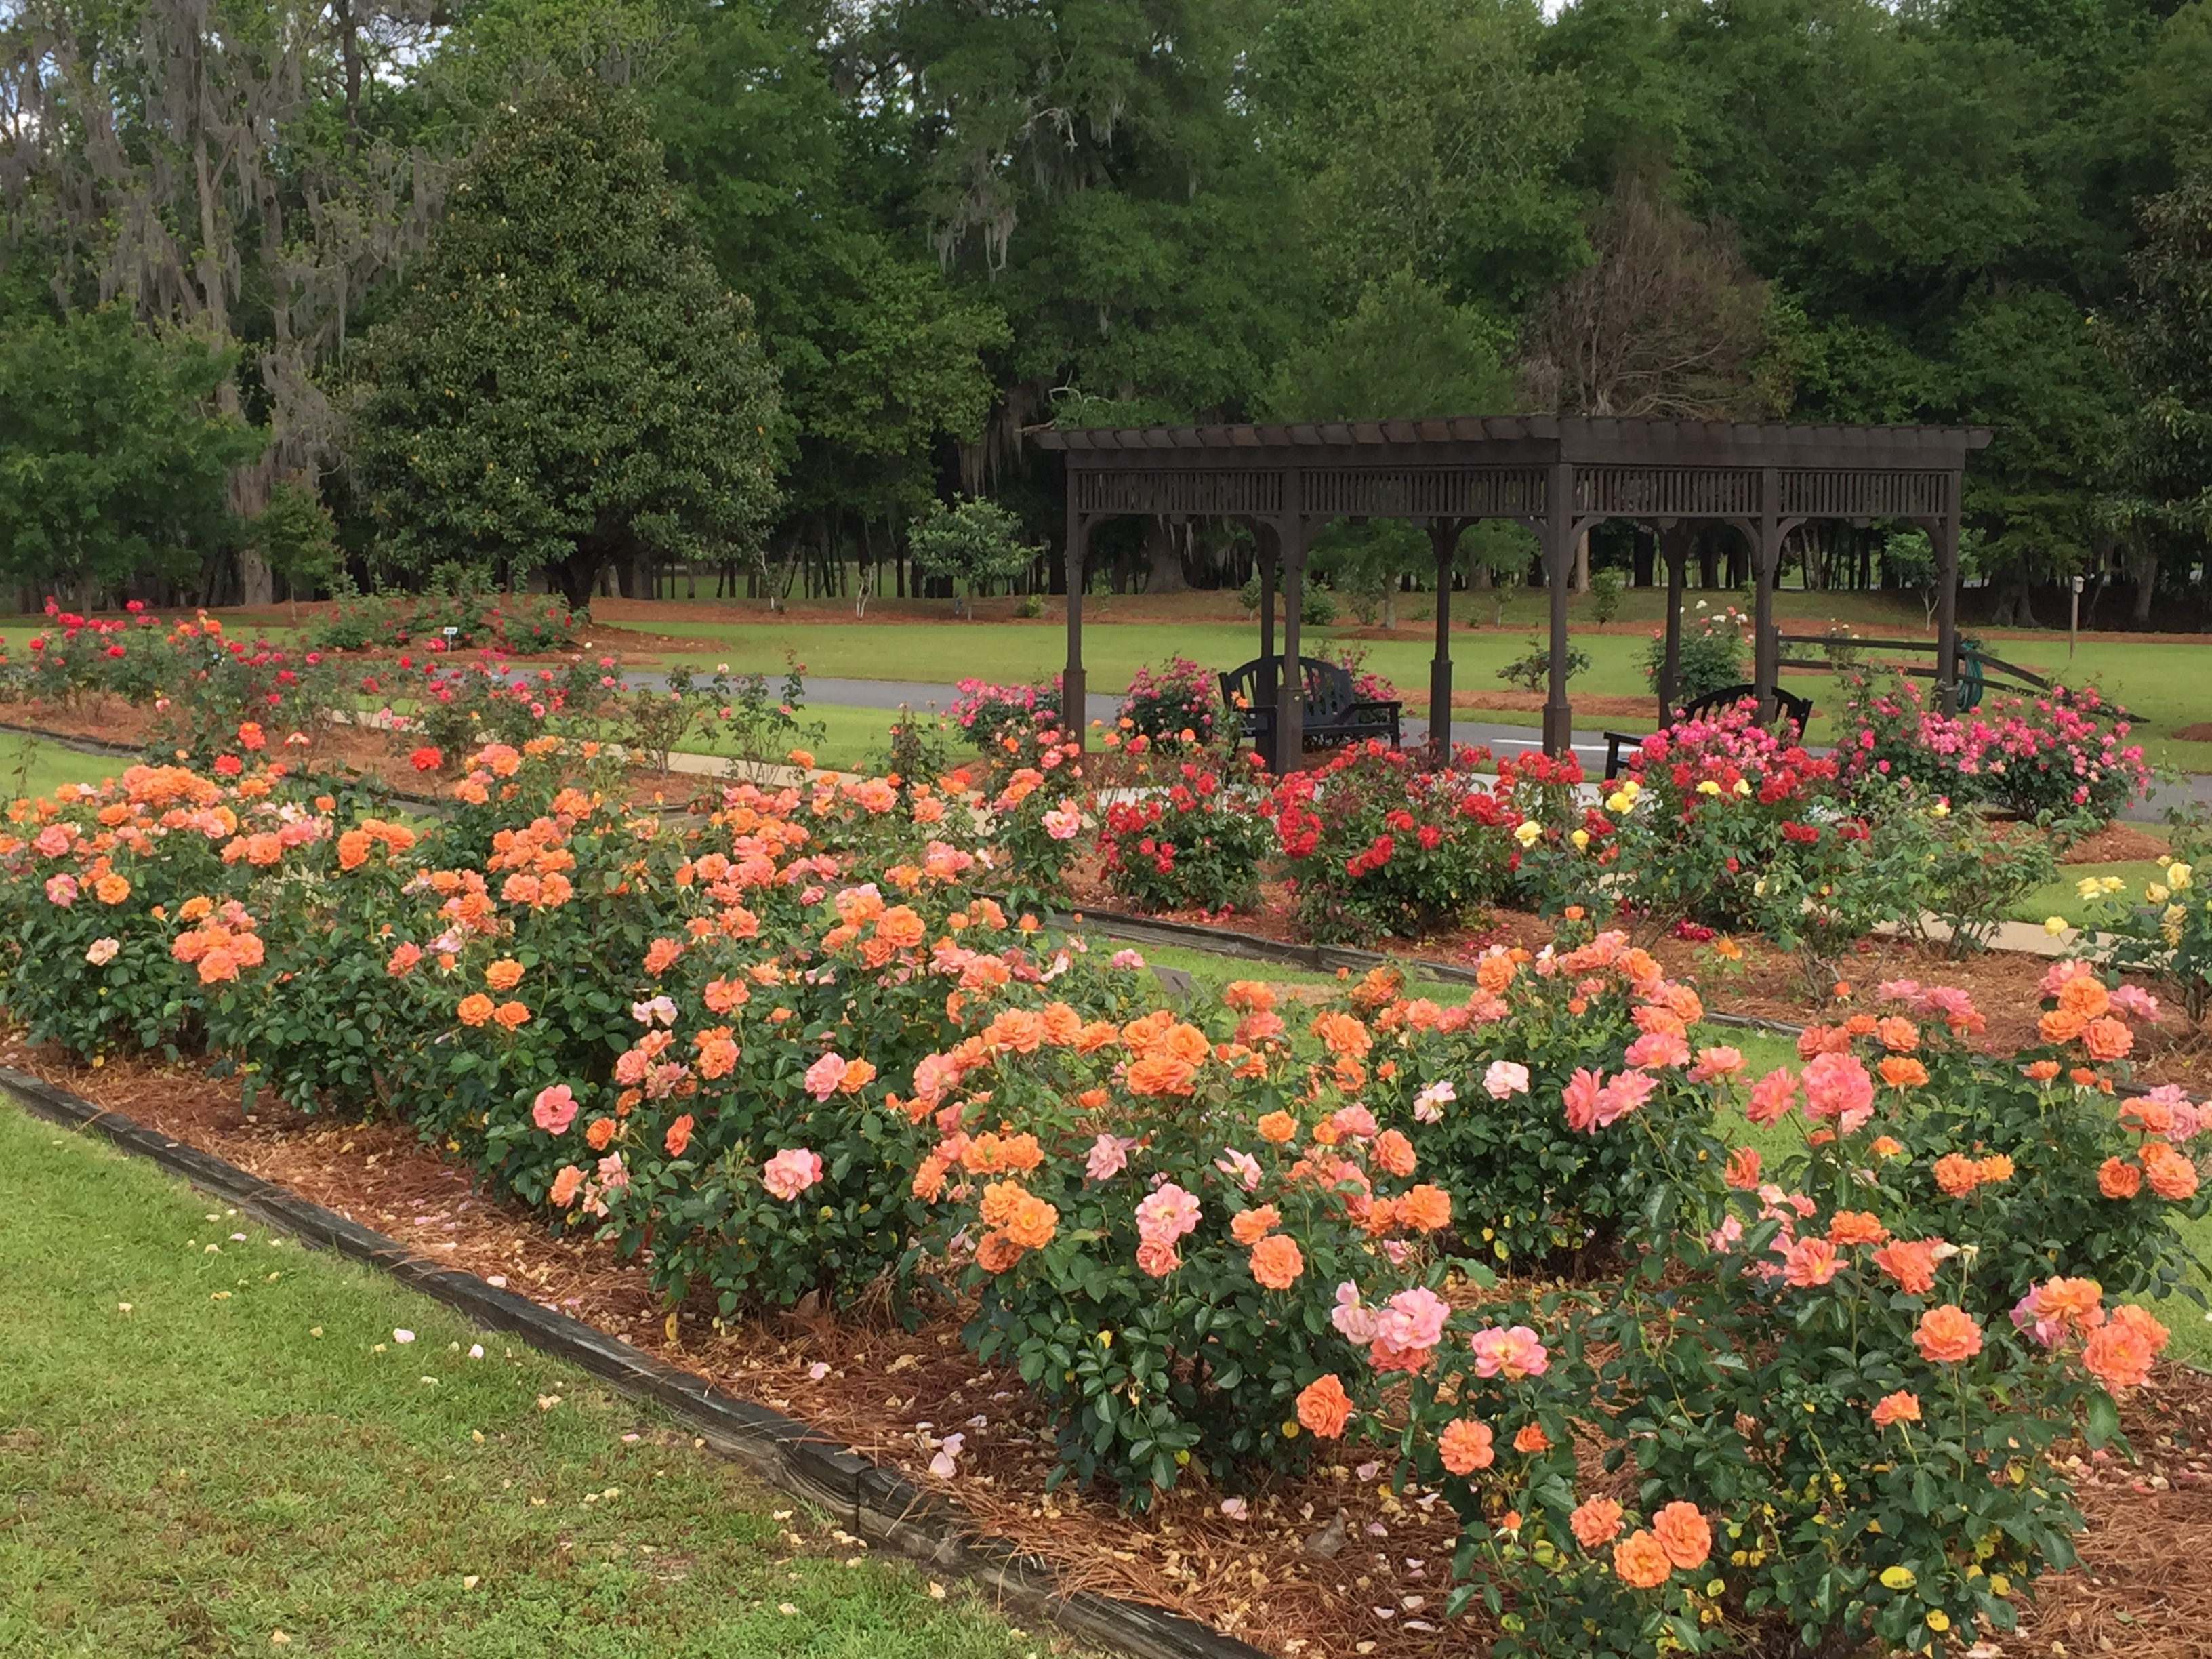 Thomasville Rose Garden | Official Georgia Tourism & Travel Website ...